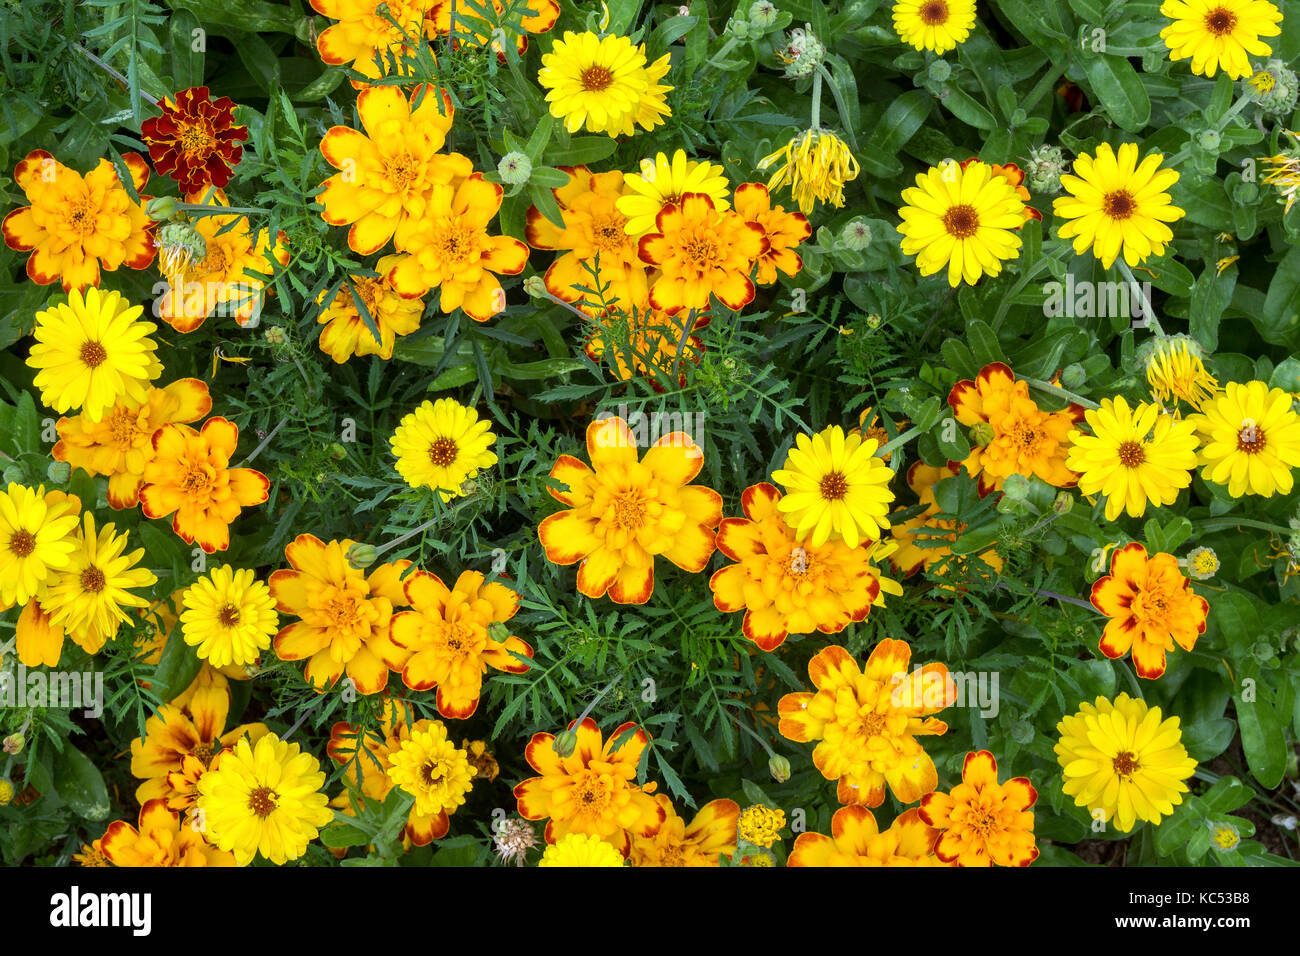 Yellow marigold (Tagetes), also Marigold, island of Flores, Azores, Portugal Stock Photo